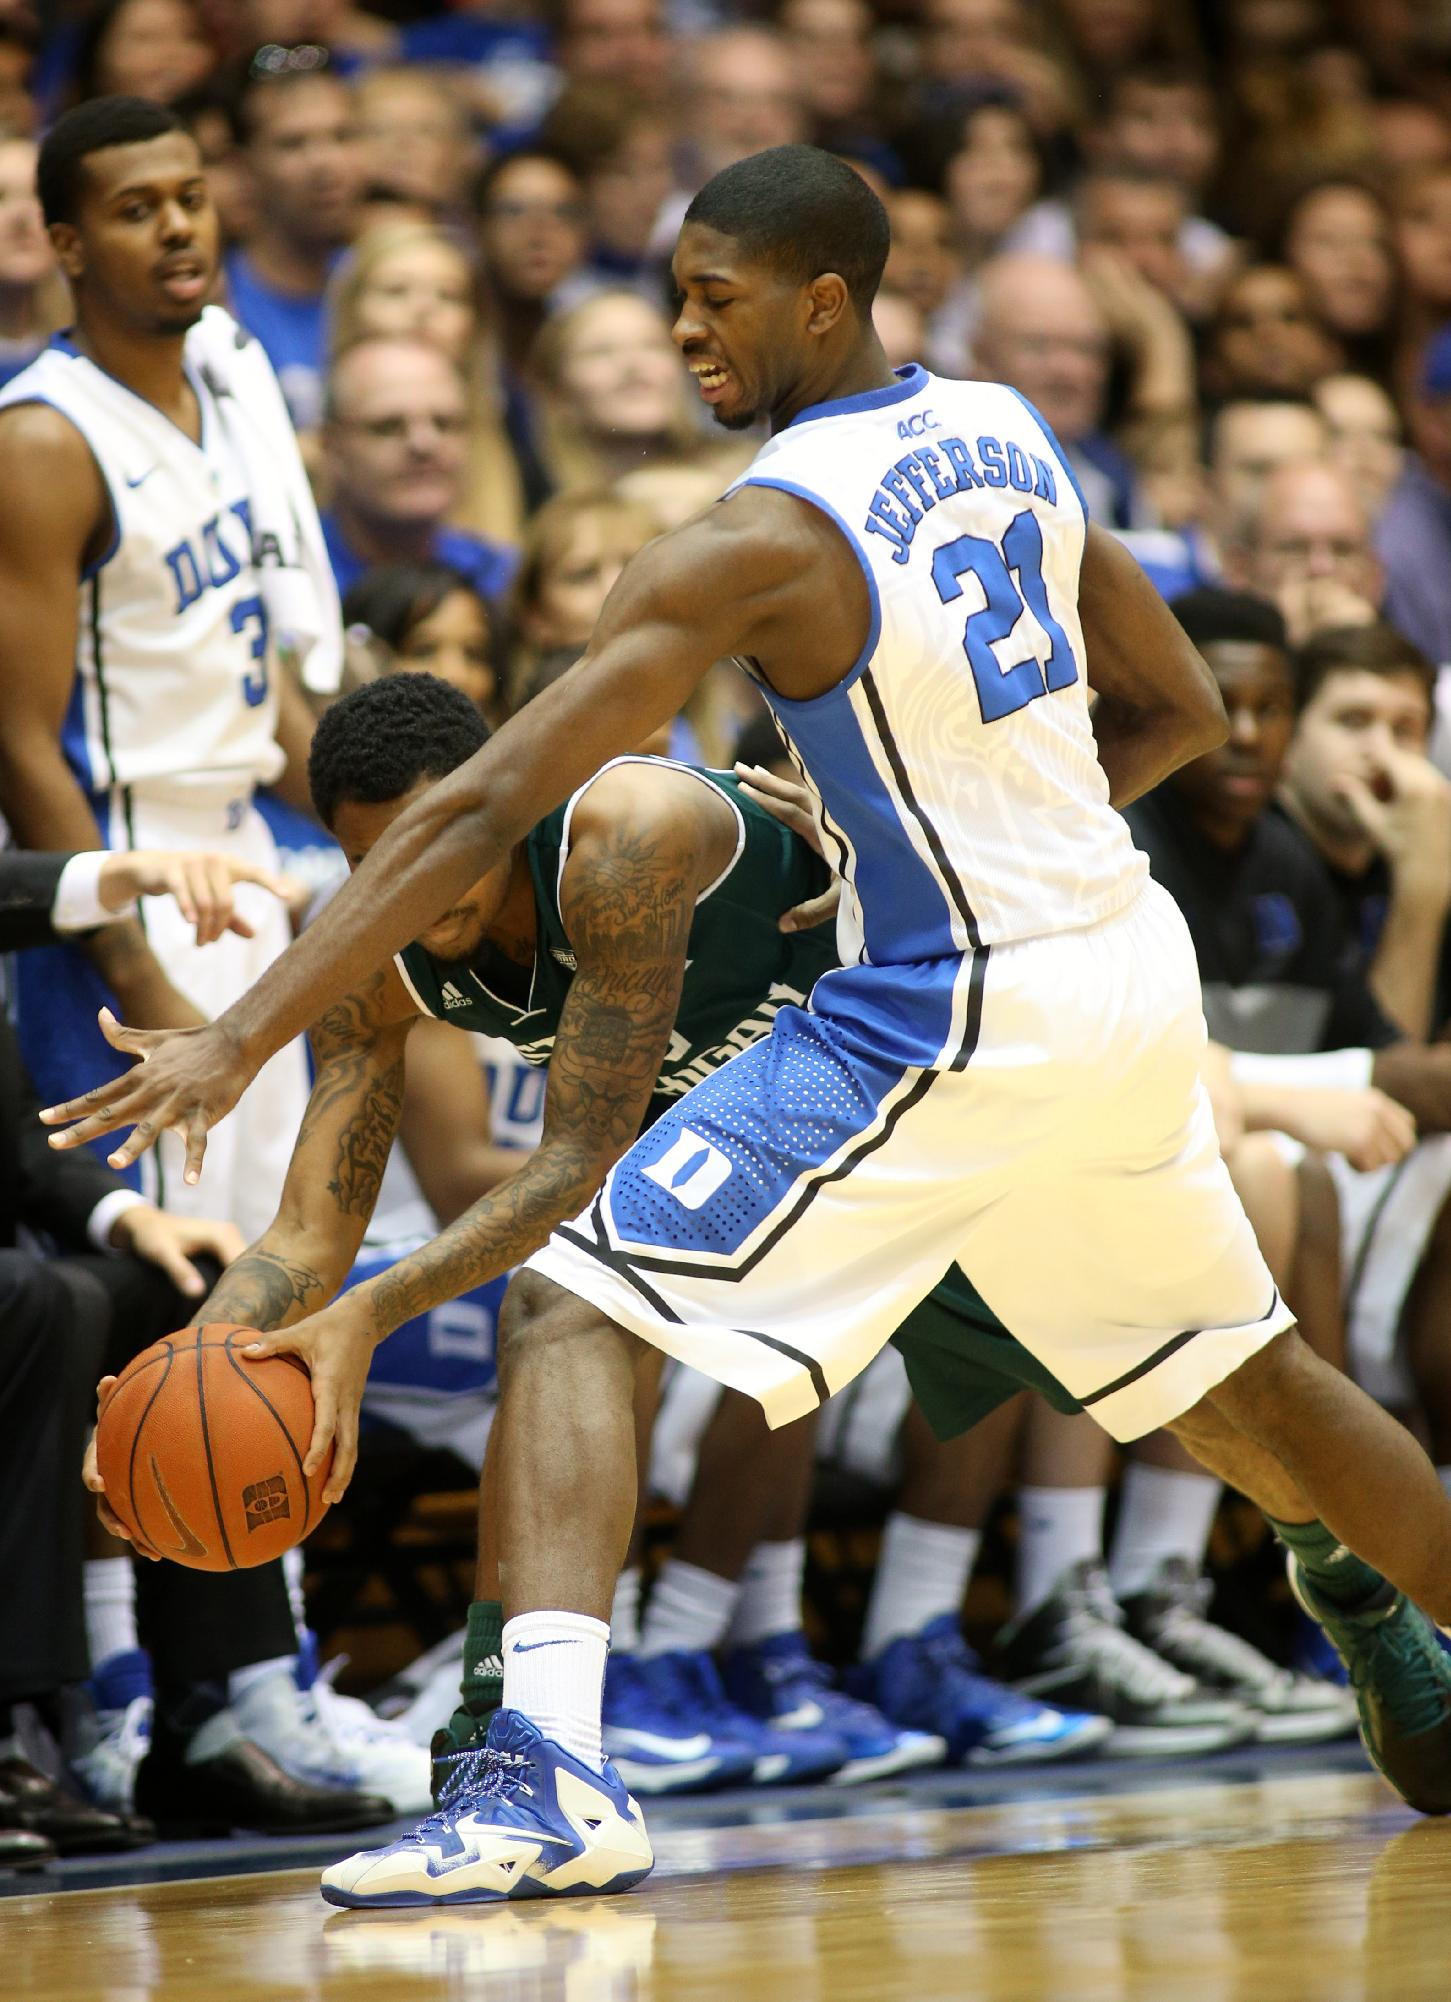 Duke's Amile Jefferson (21) pressures Eastern Michigan's Darrell Combs during the first half of an NCAA college basketball game in Durham, N.C., Saturday, Dec. 28, 2013